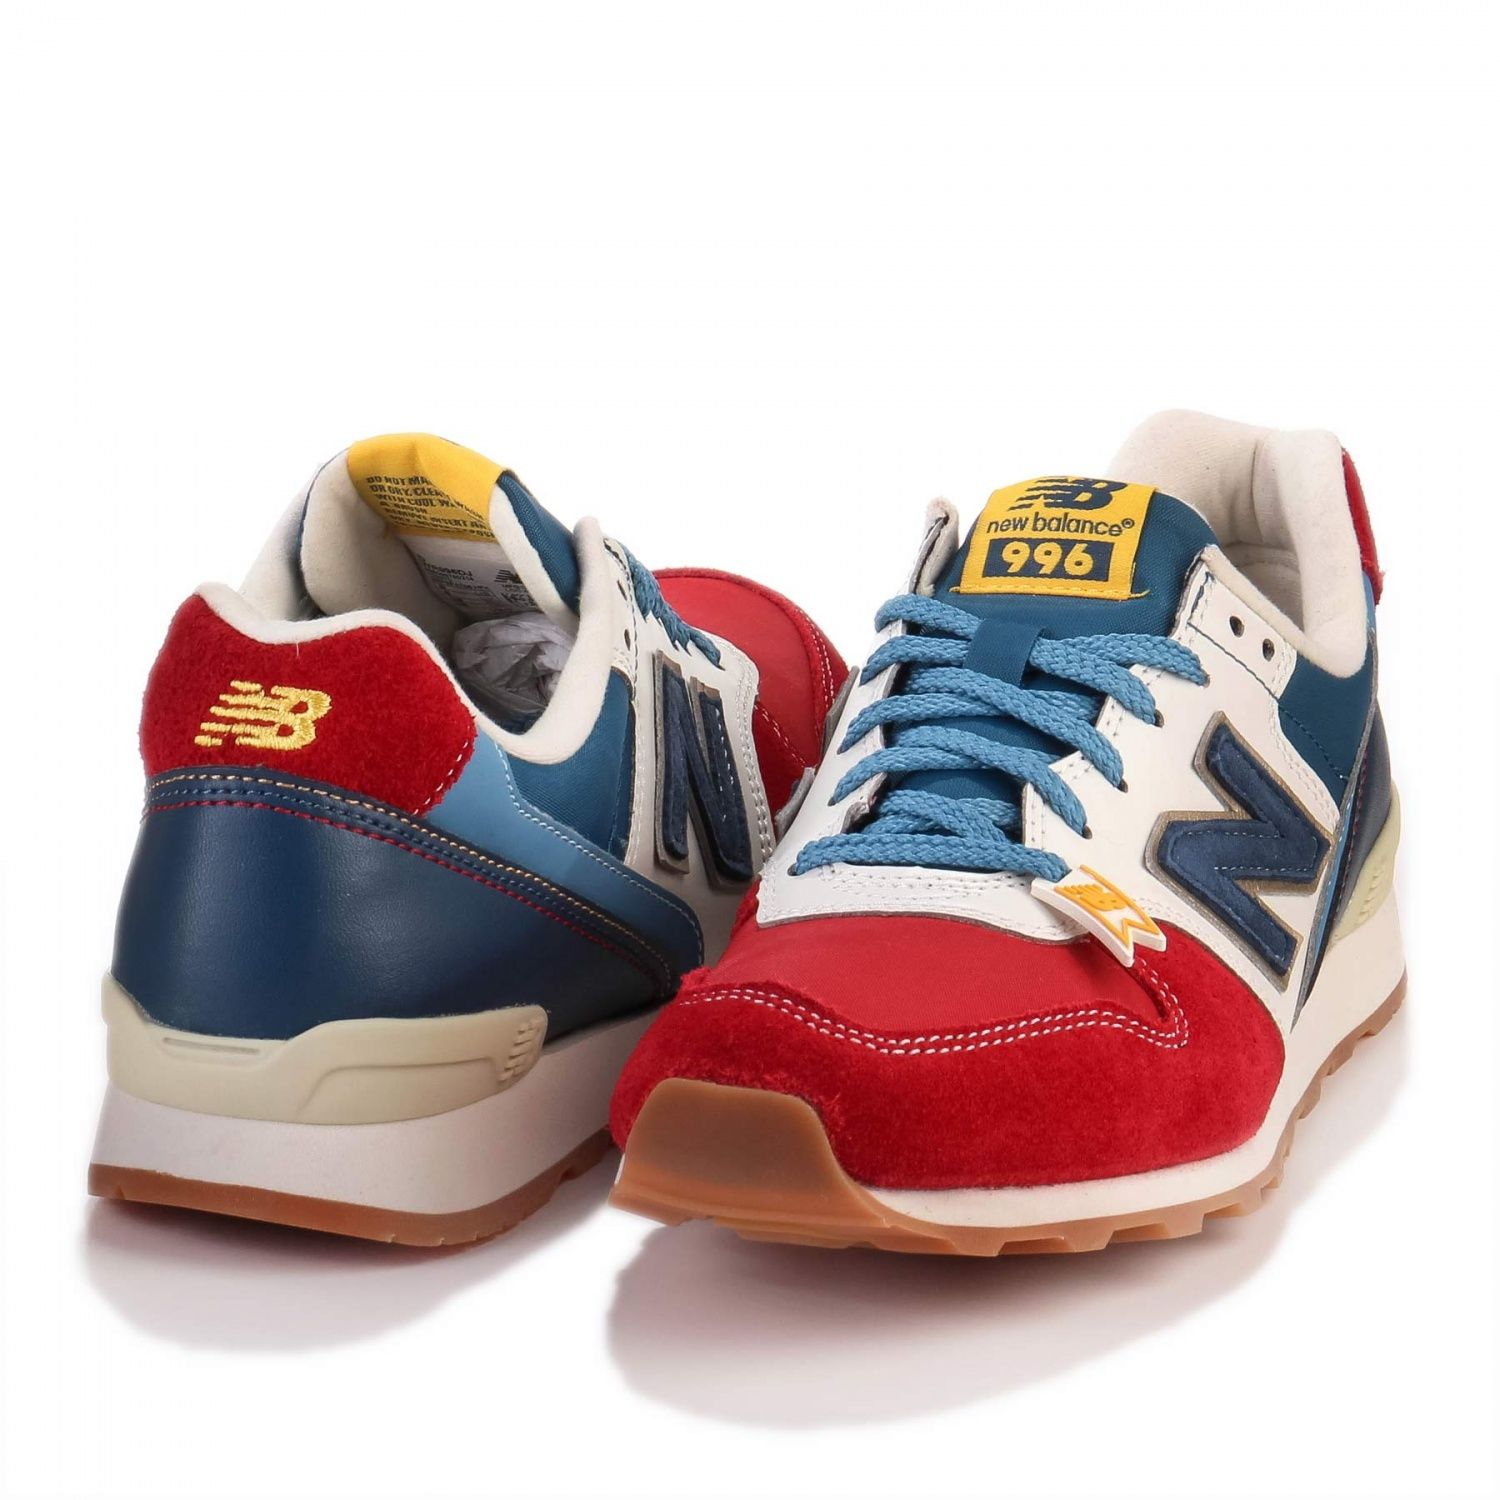 new balance wr996 red blue white